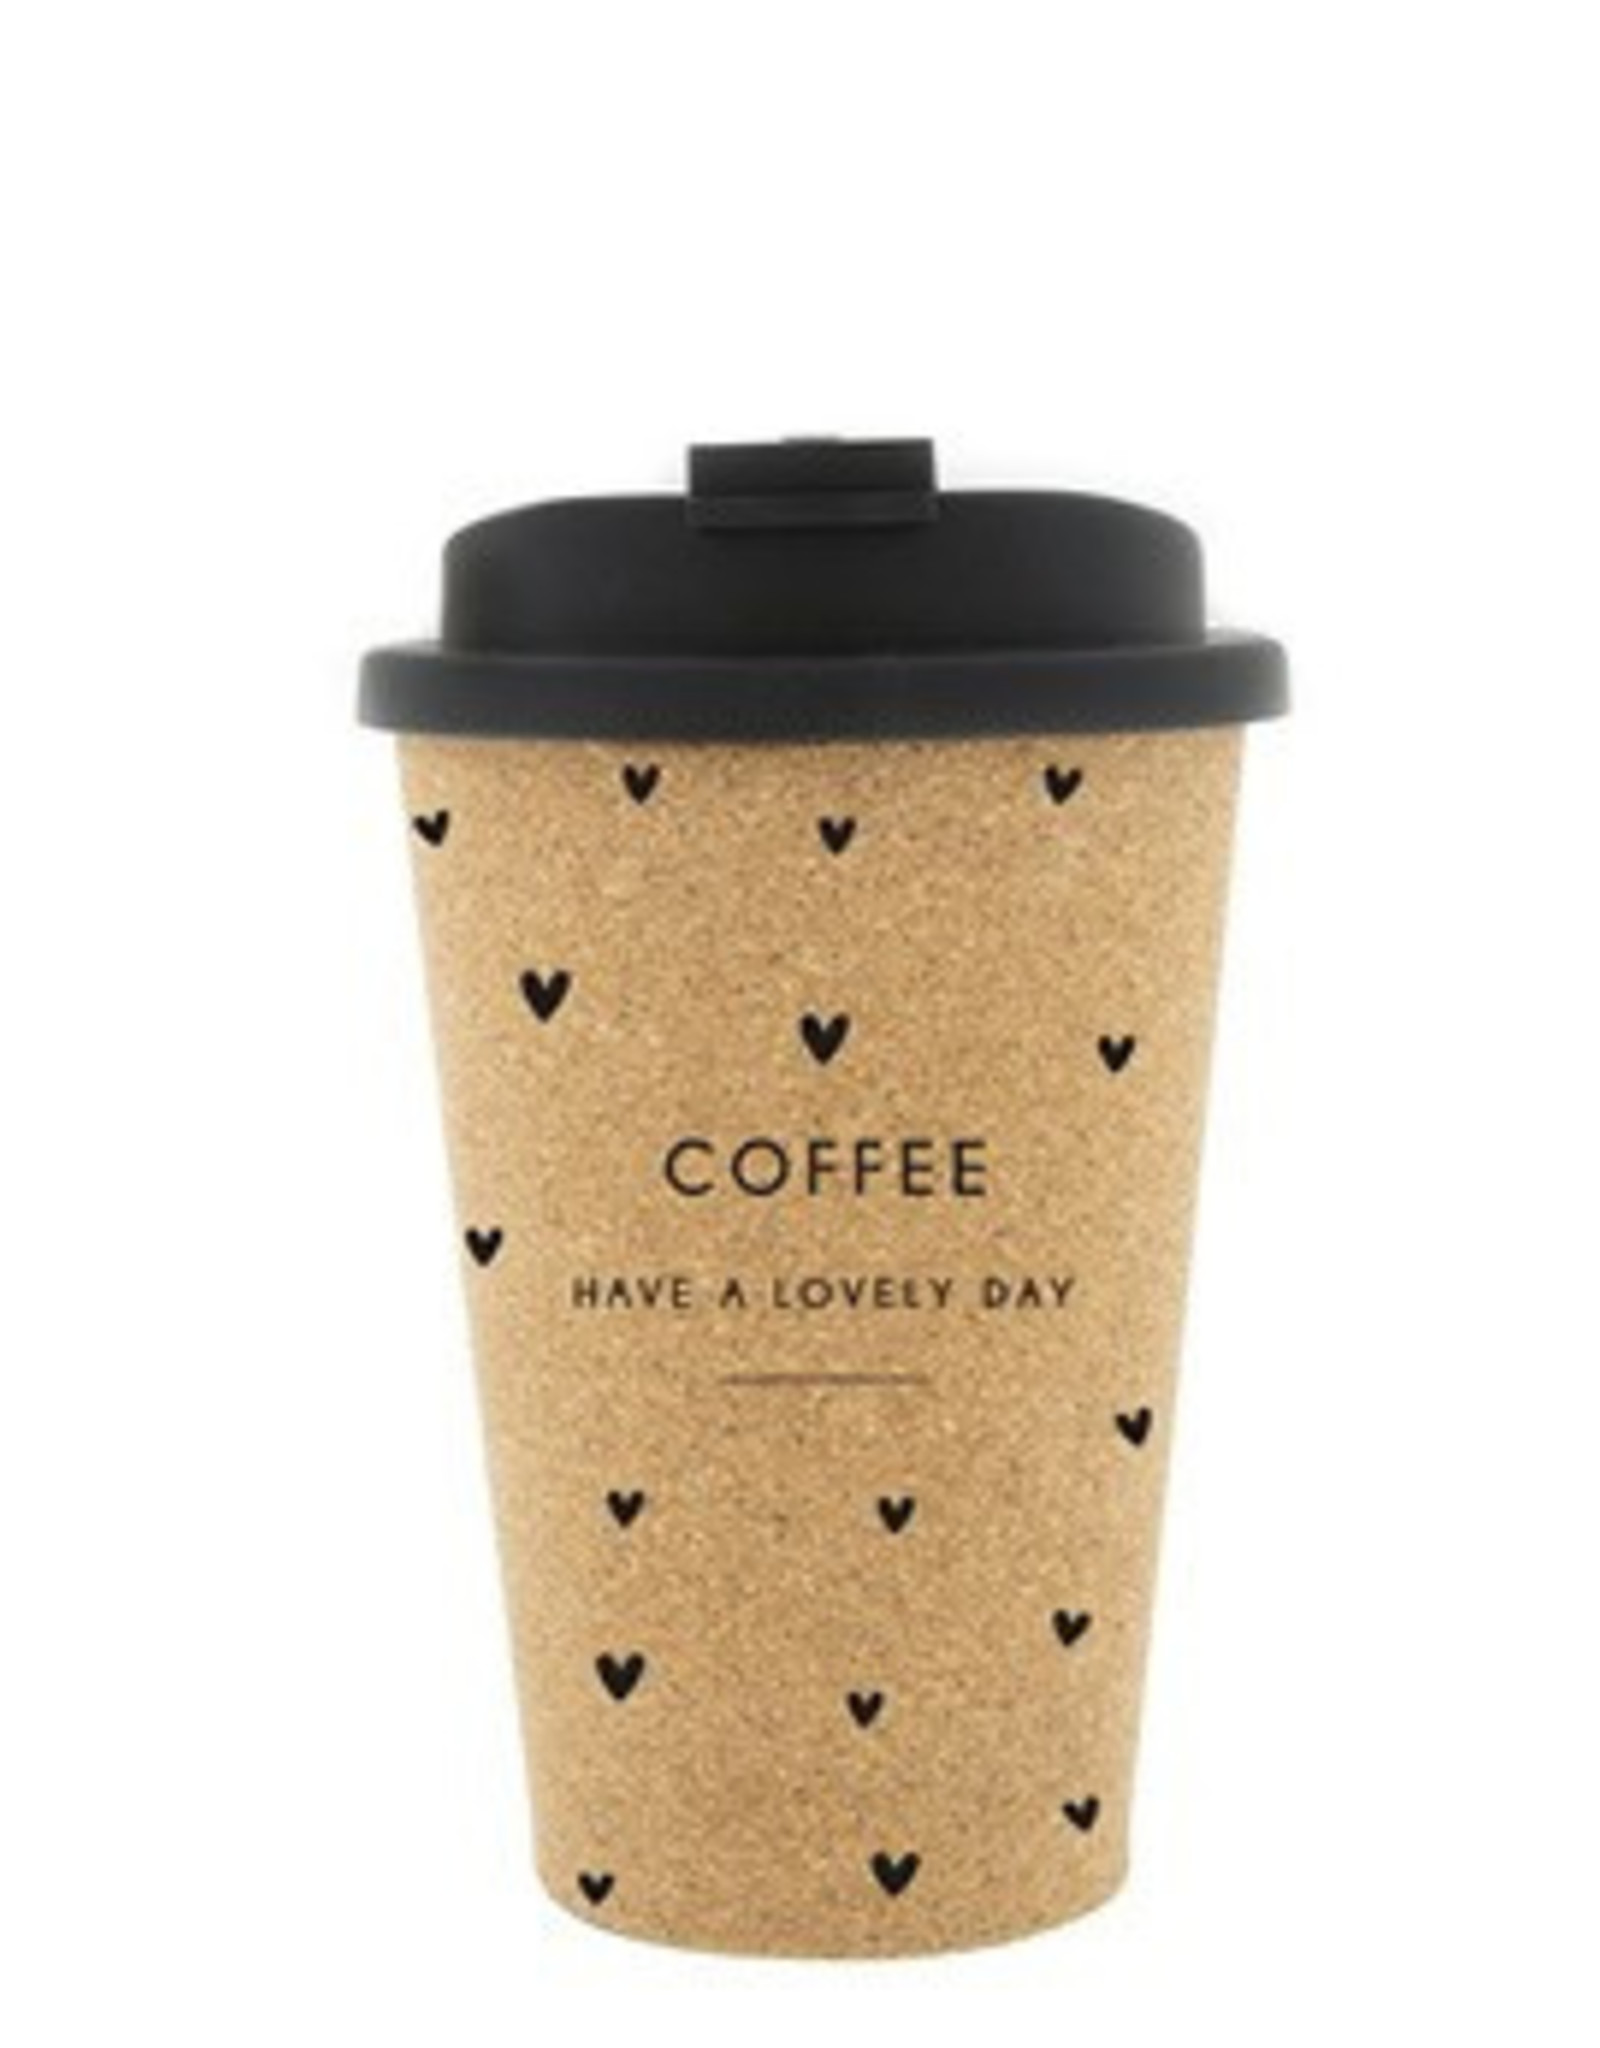 Bastion Collections Coffee to go | Hot Drinks | Have a Lovely Day | Bastion Collections